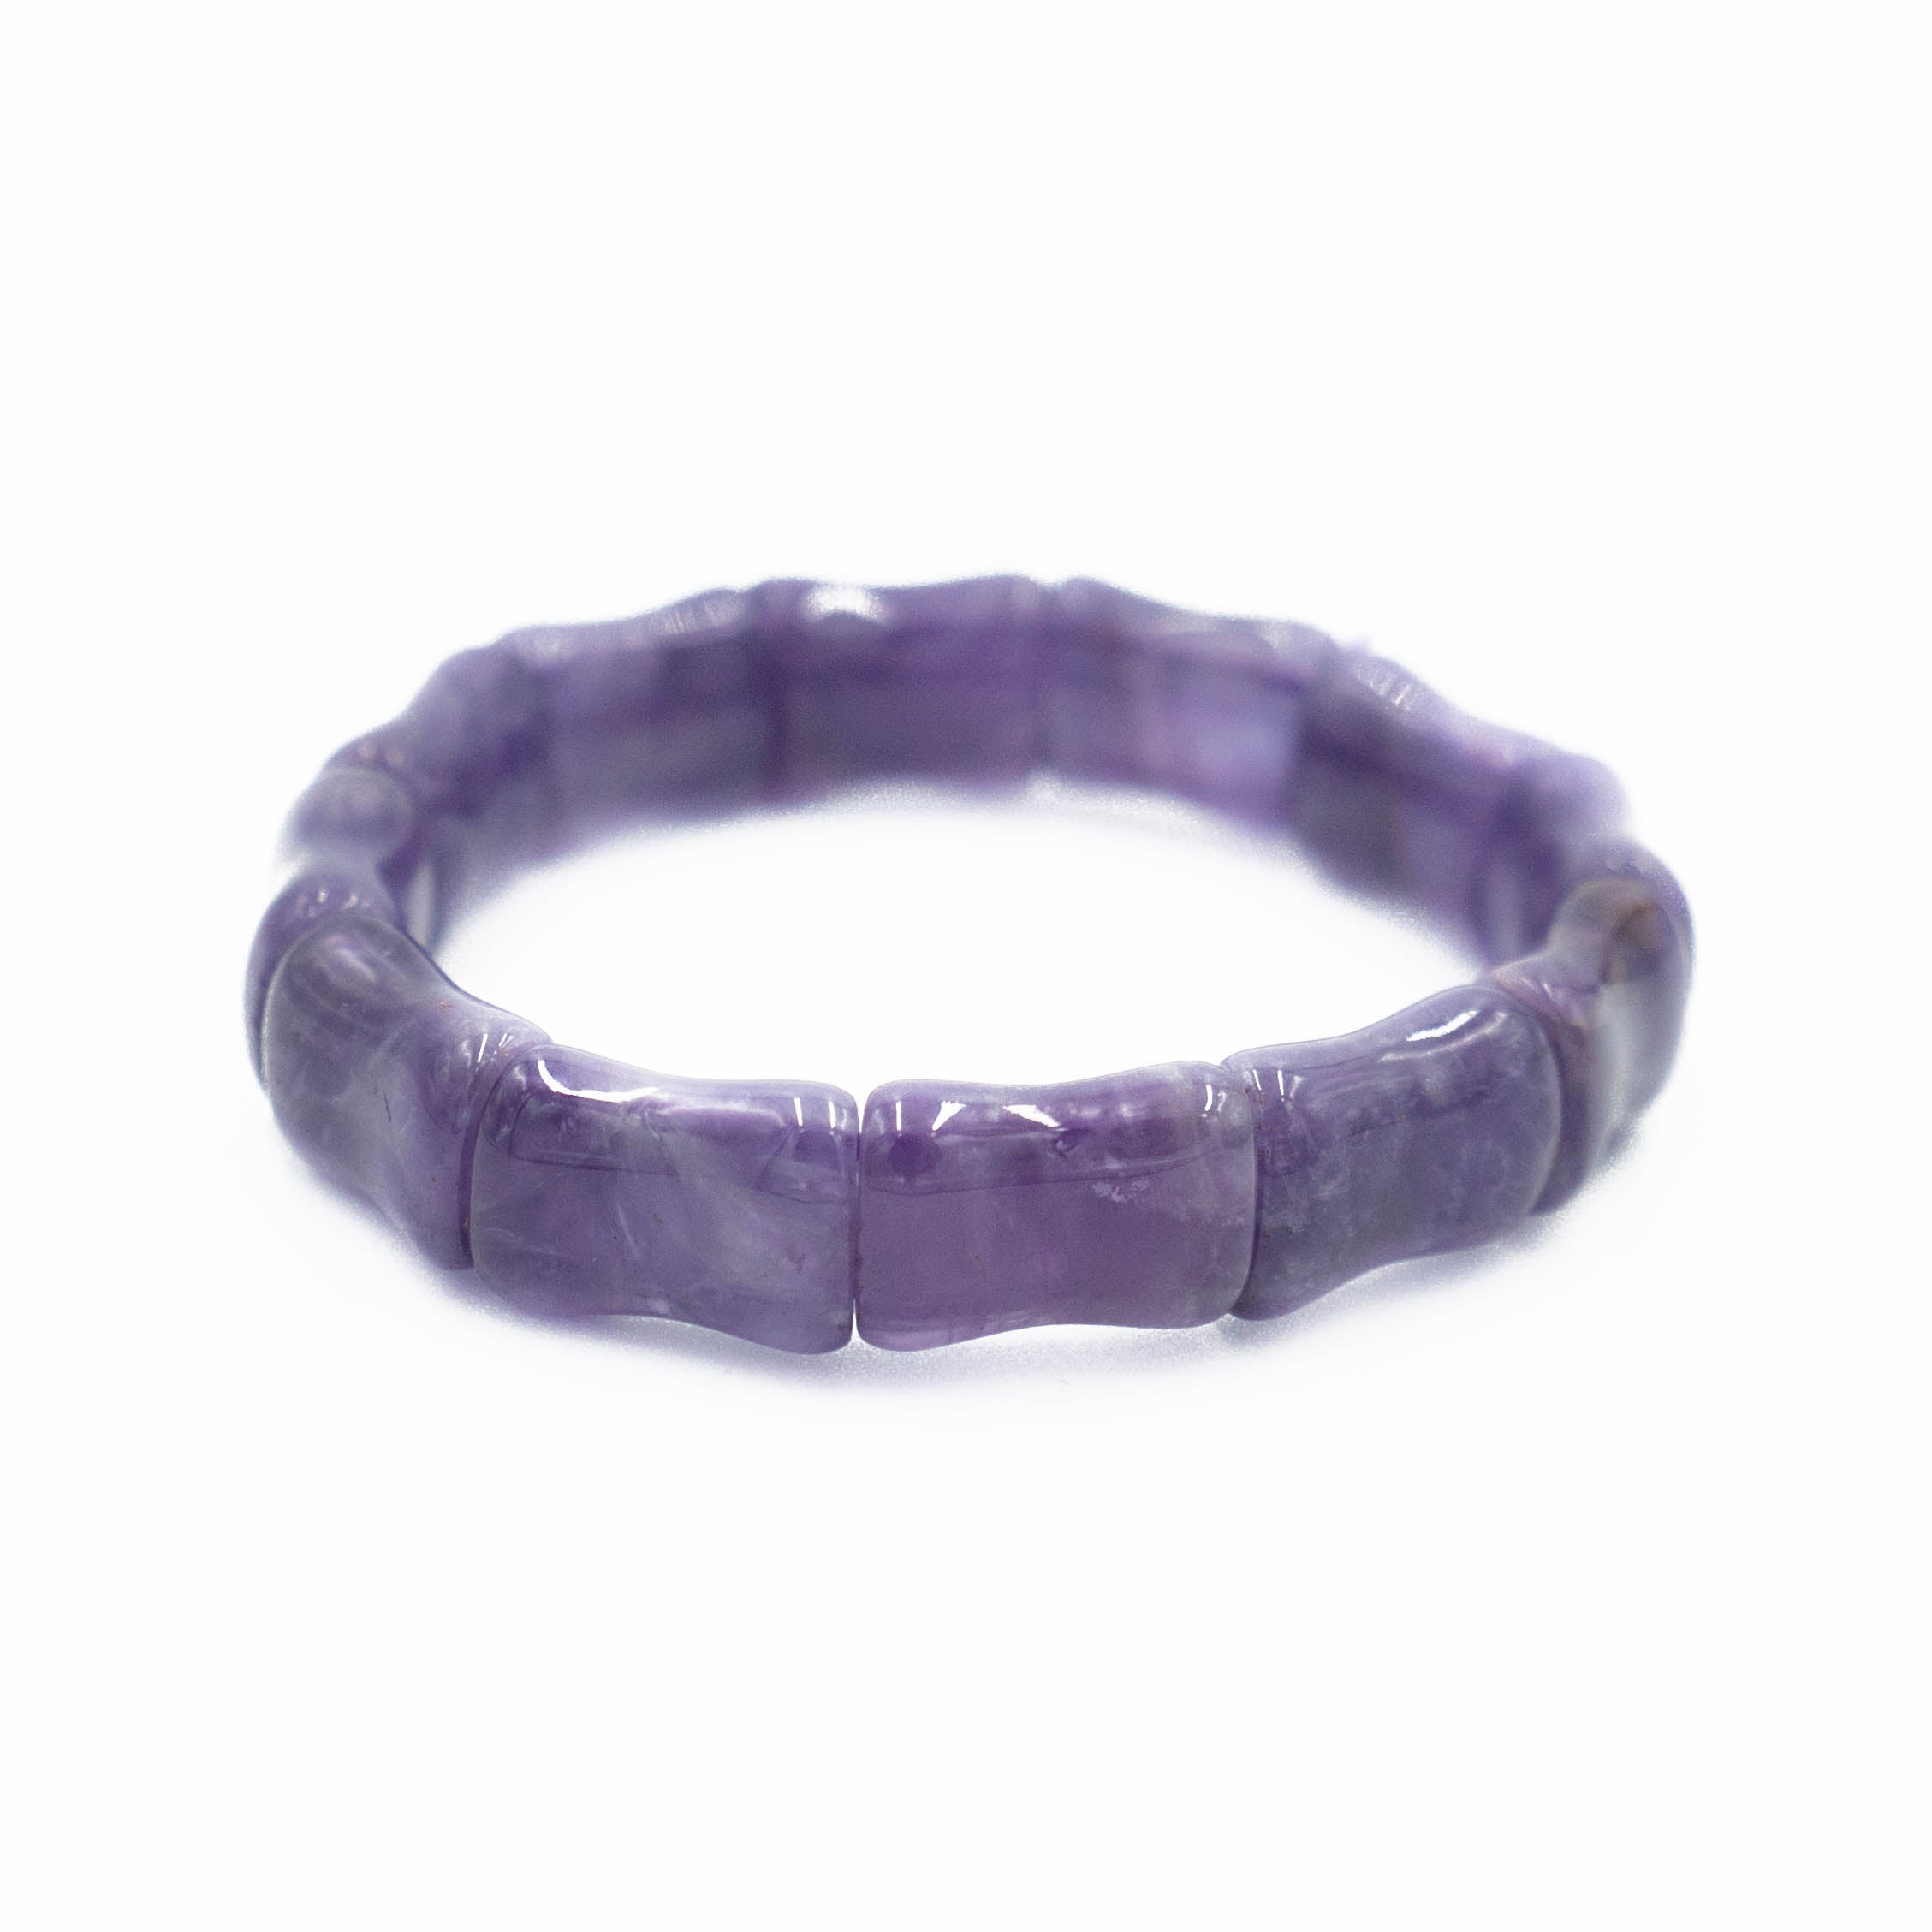 Bamboo Beach Bangle, Amethyst